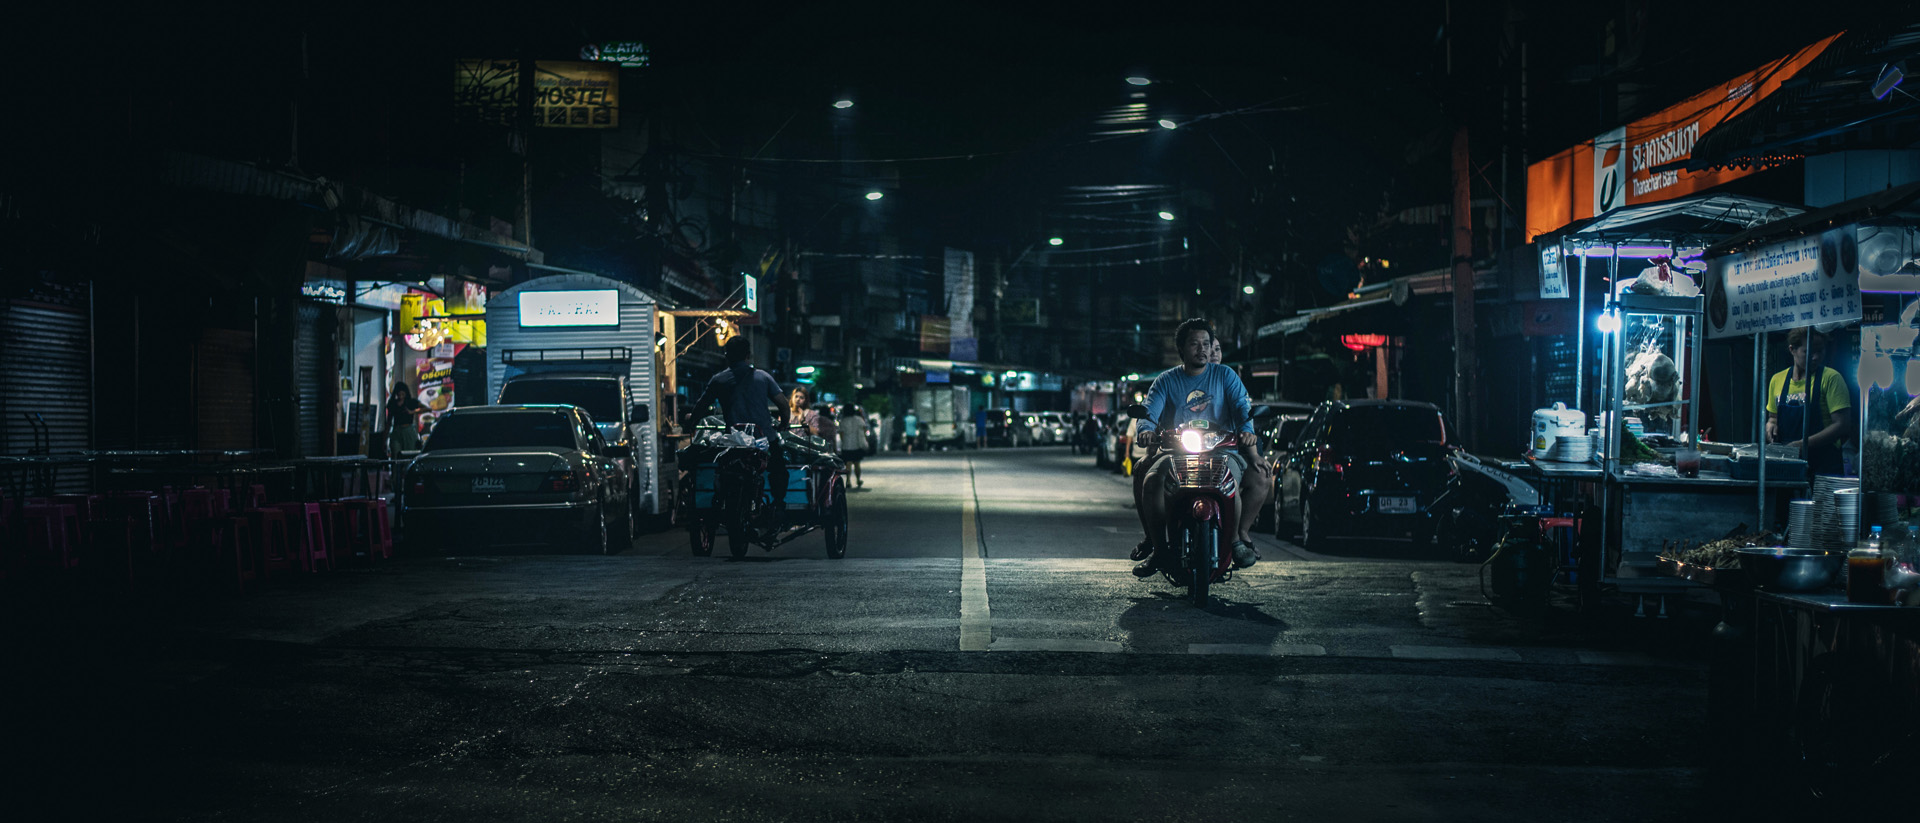 Enchanting Photographs of Bangkok at Night (16 pics)